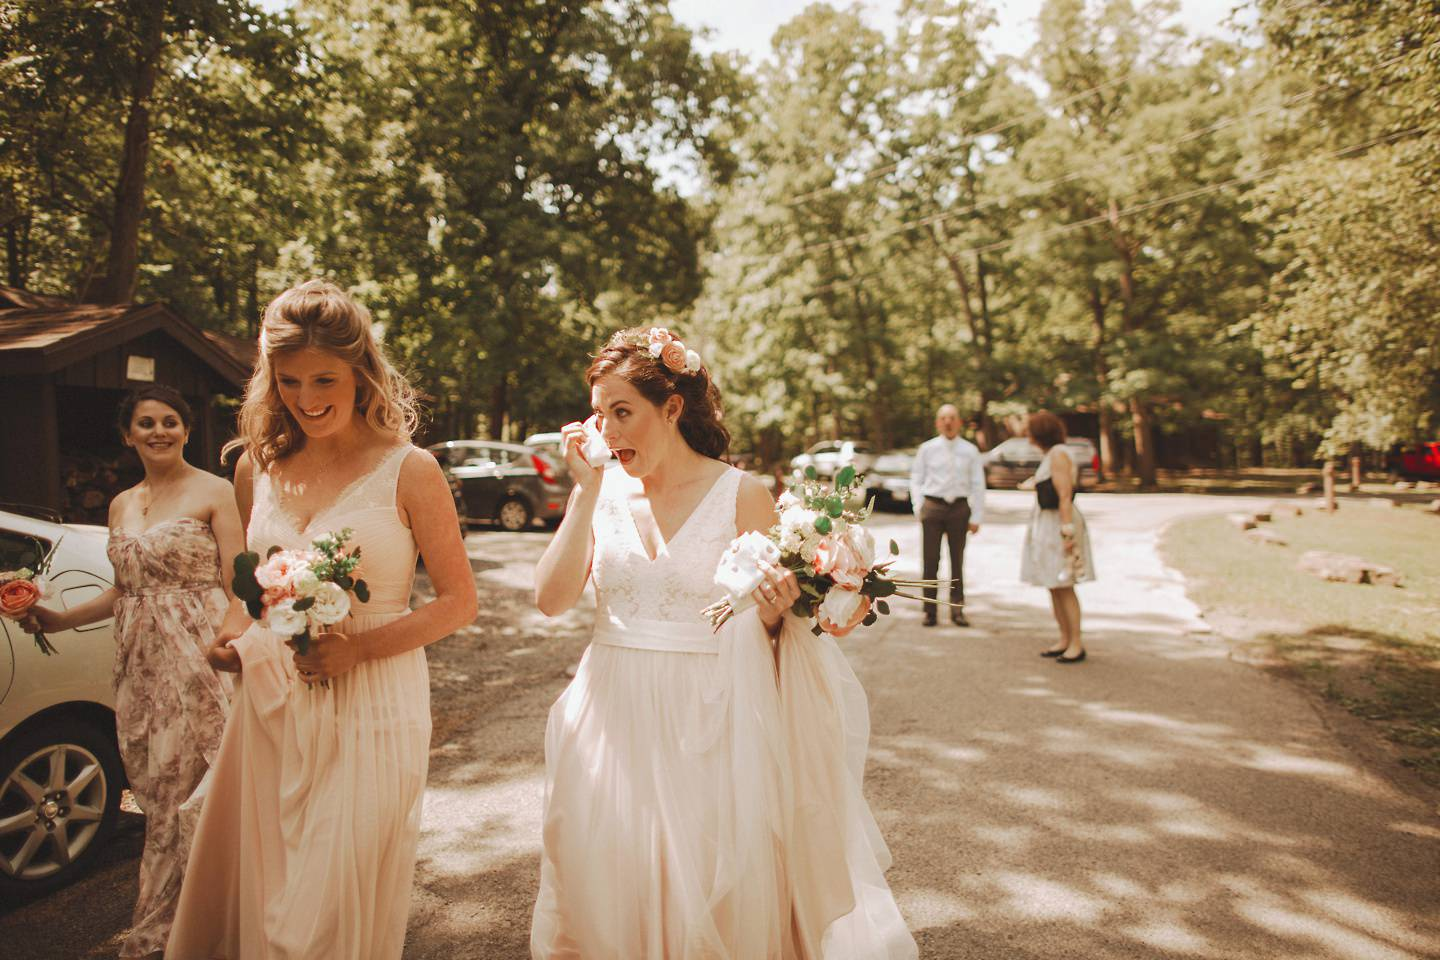 wedding pictures from Cacapon Resort State Park